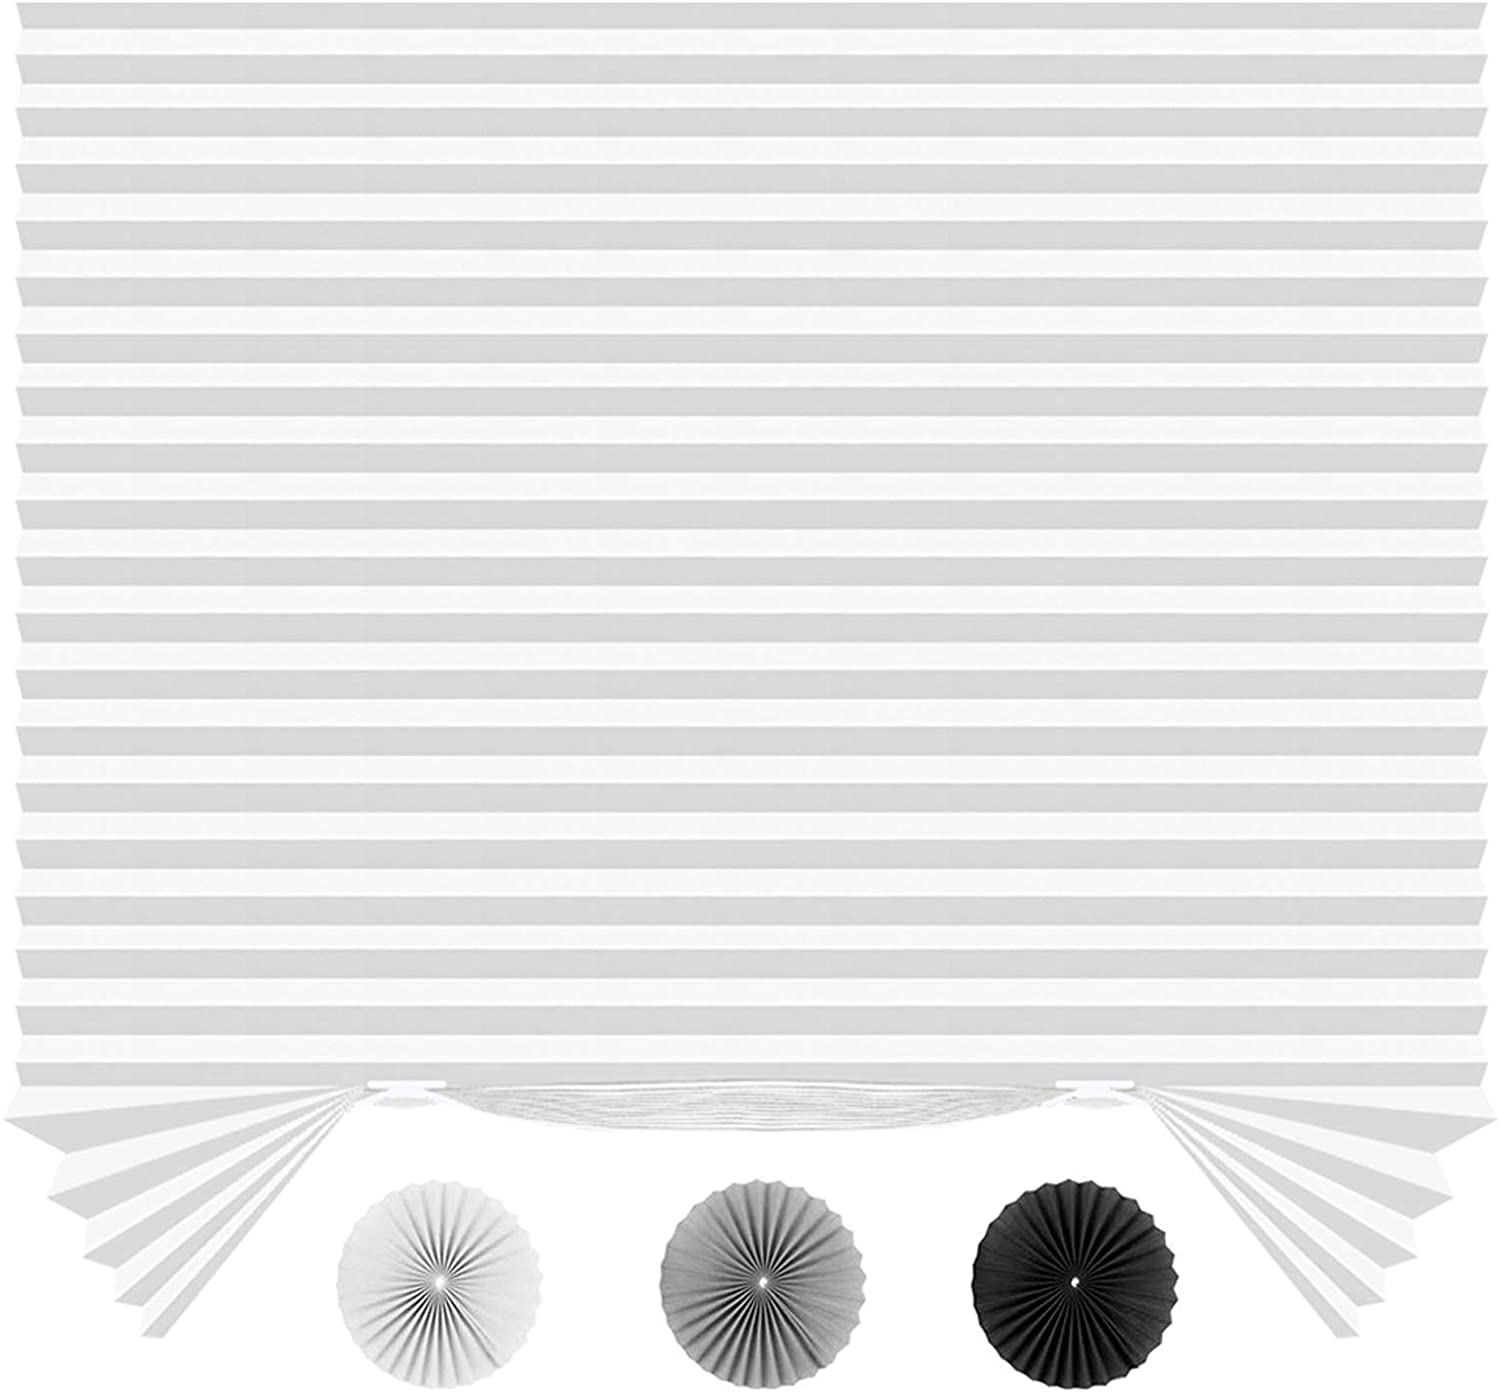 "SEEYE Light Filtering Temporary Blinds Cordless Shades Fabric Pleated Fabric Shade Easy to Cut and Install, 36"" W x 72"" L - 6 Pack, White,with 12 Clips"